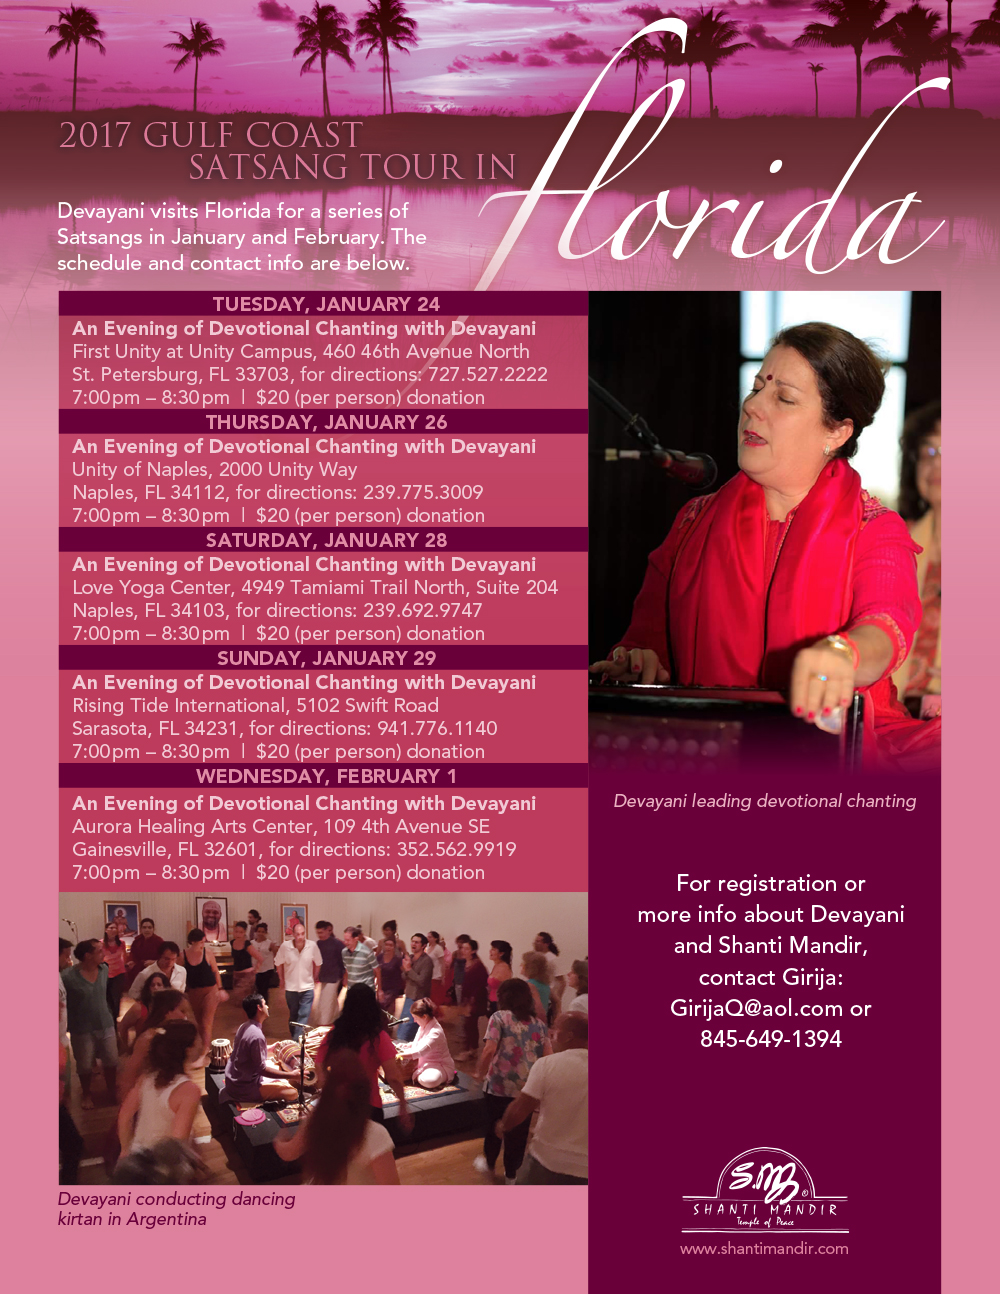 Florida Satsang Tour-Gulf Coast-Flyer-2017